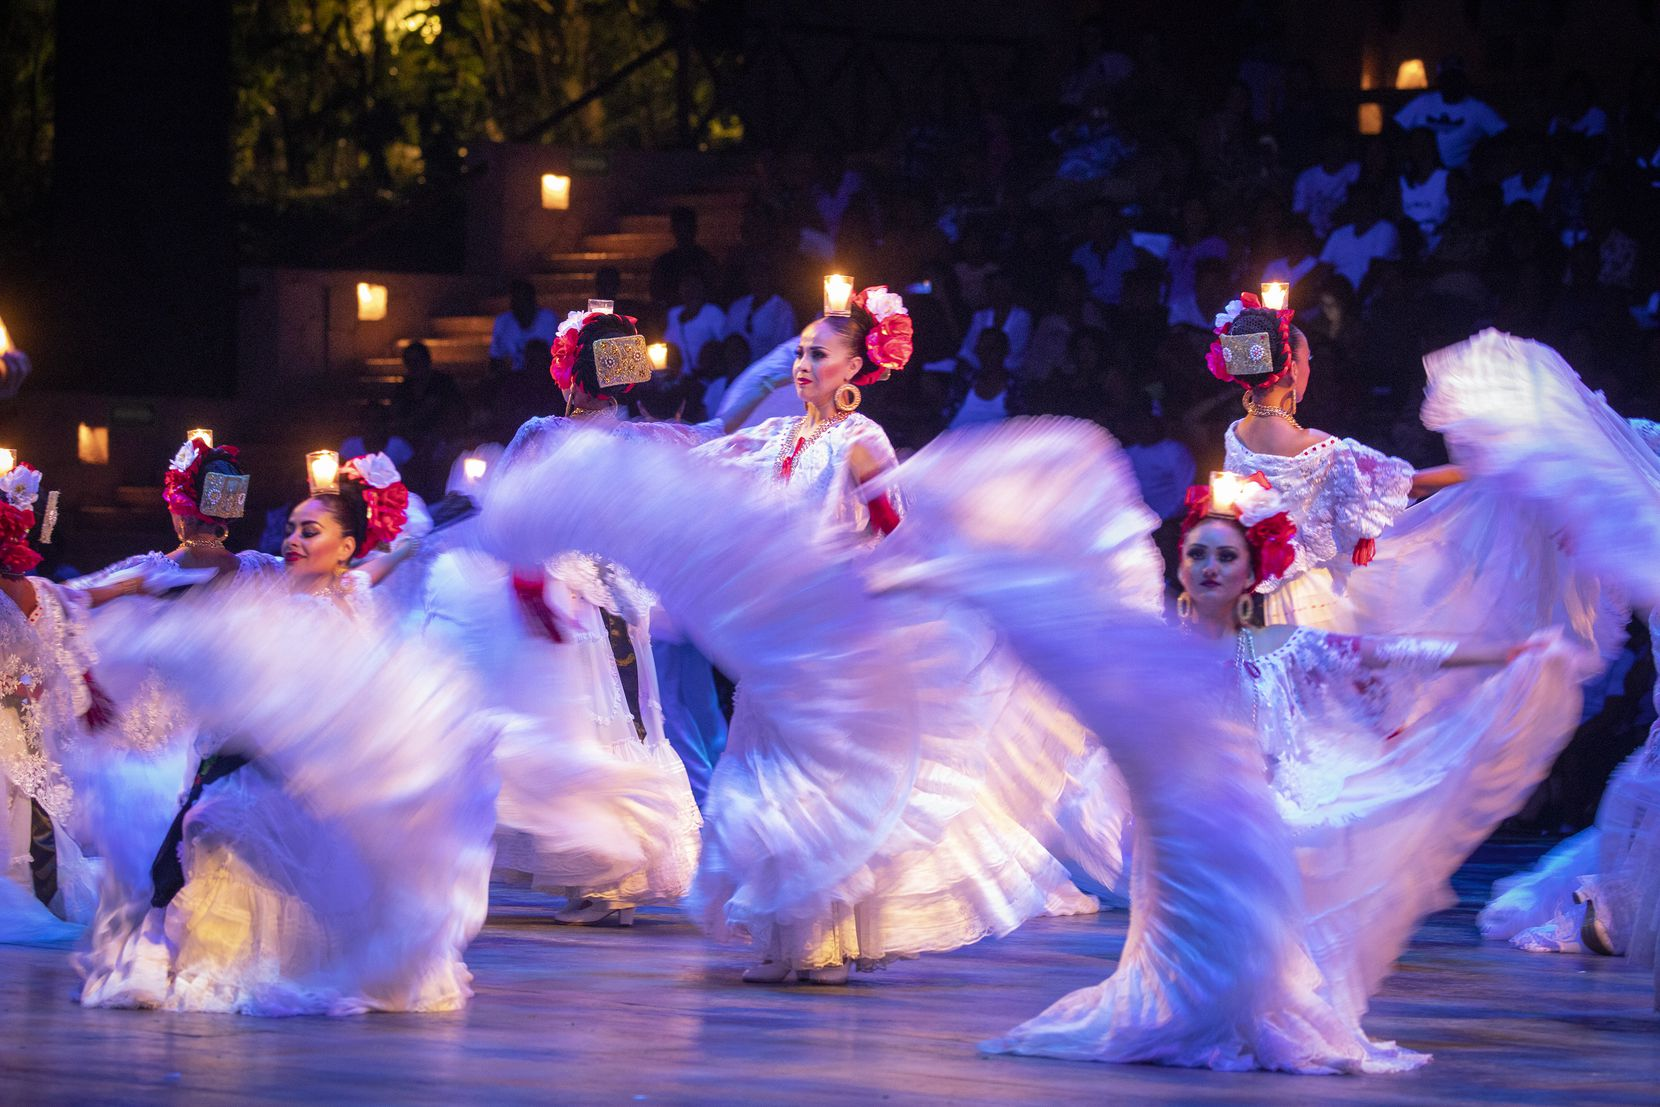 Dancers perform during a show documenting the history of Mexico at Xcaret Park.